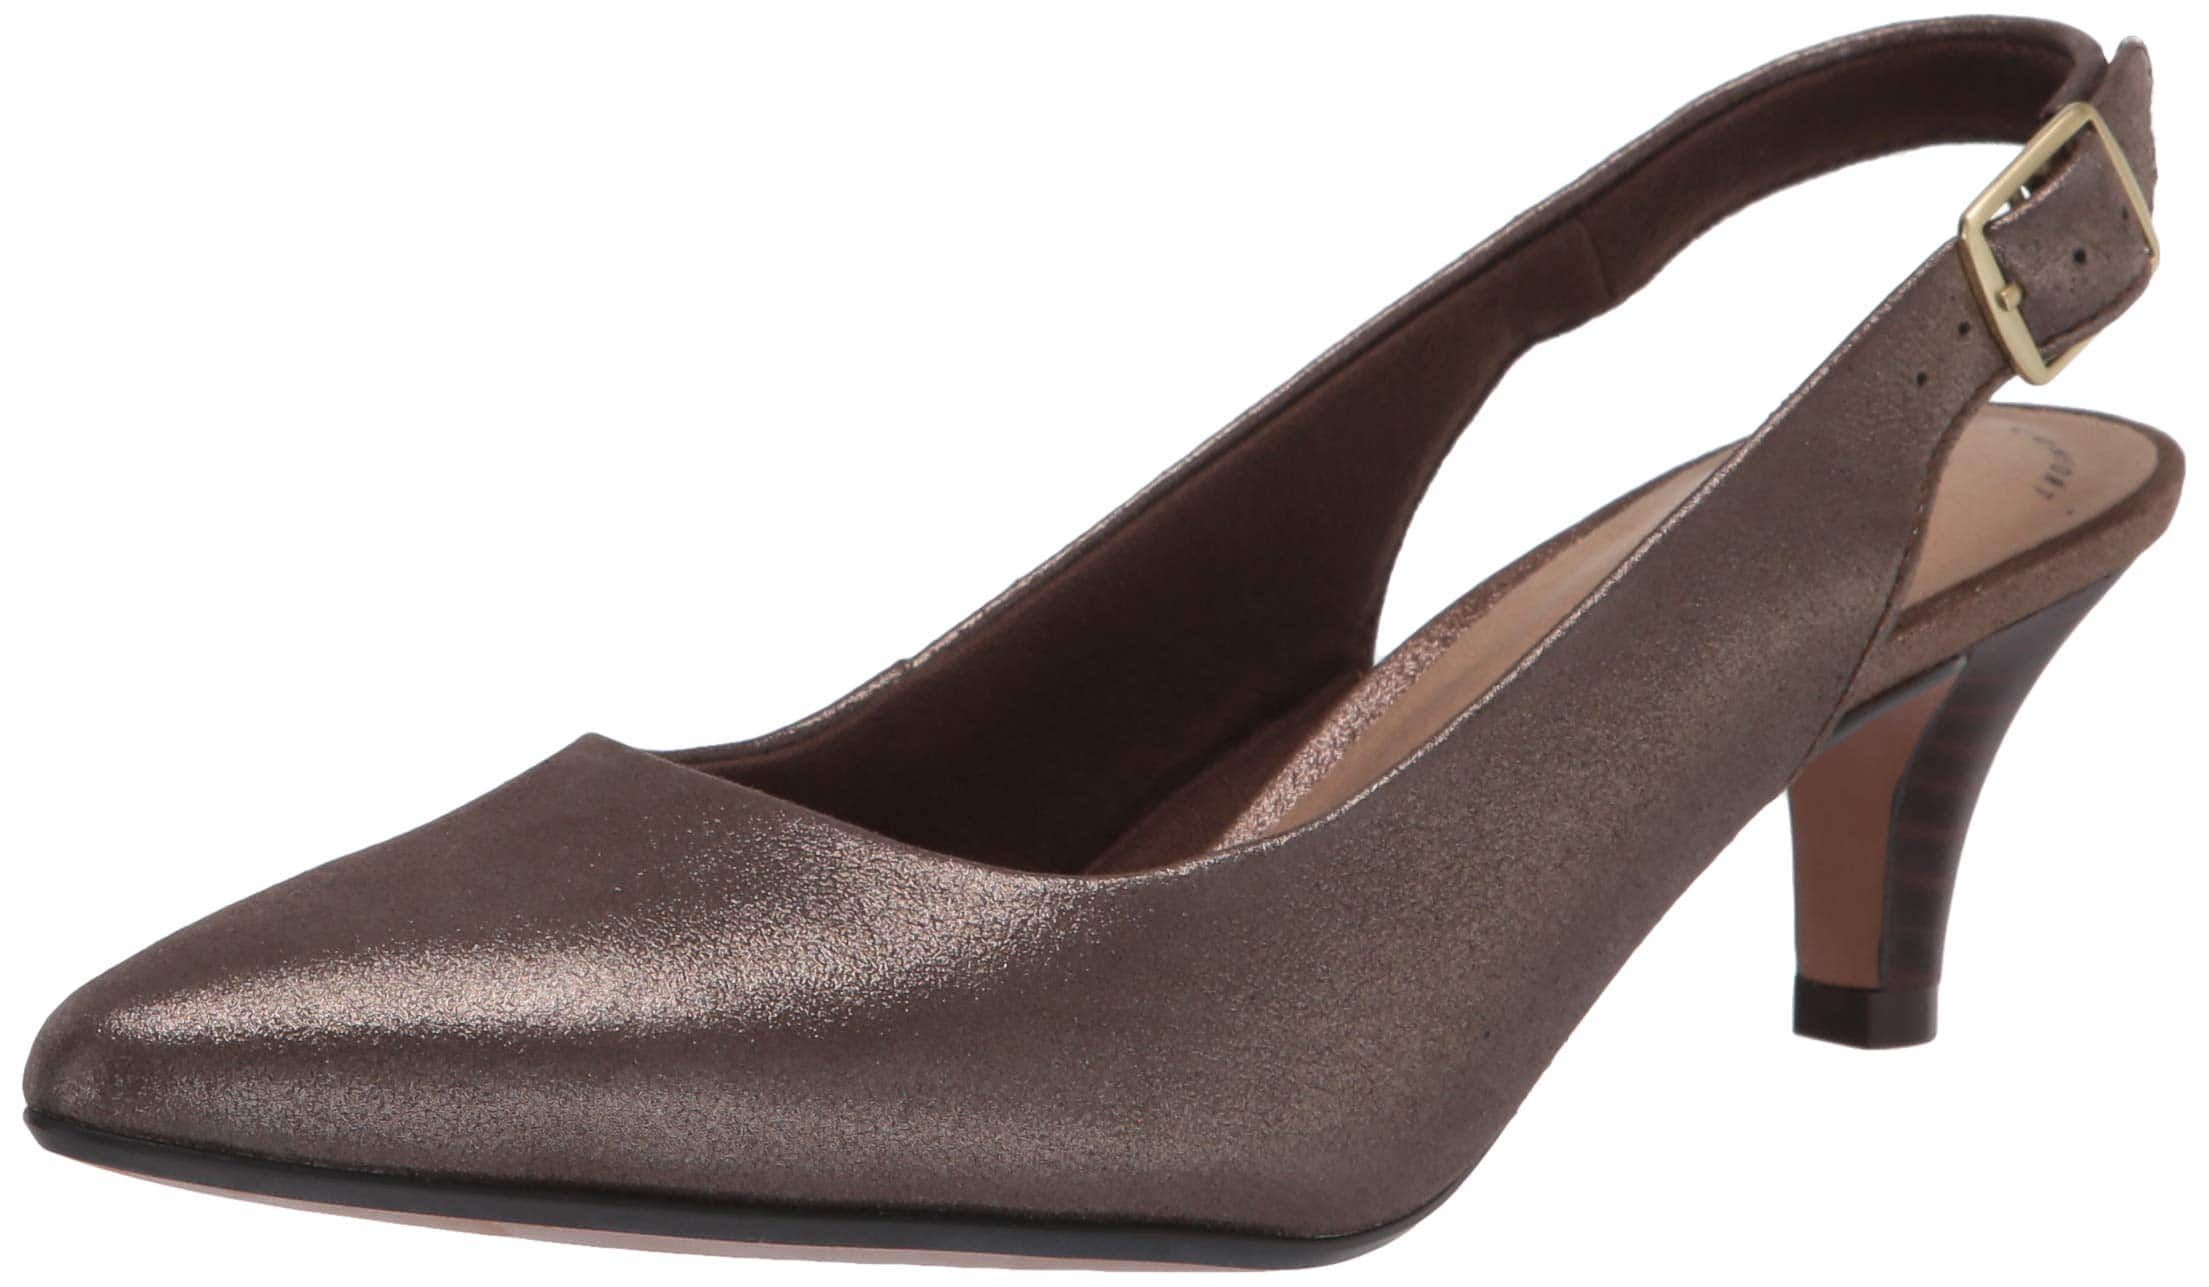 Clarks Women's Linvale Sondra Pump (Metallic Leather) $17 + free shipping w/ Prime or on orders over $25